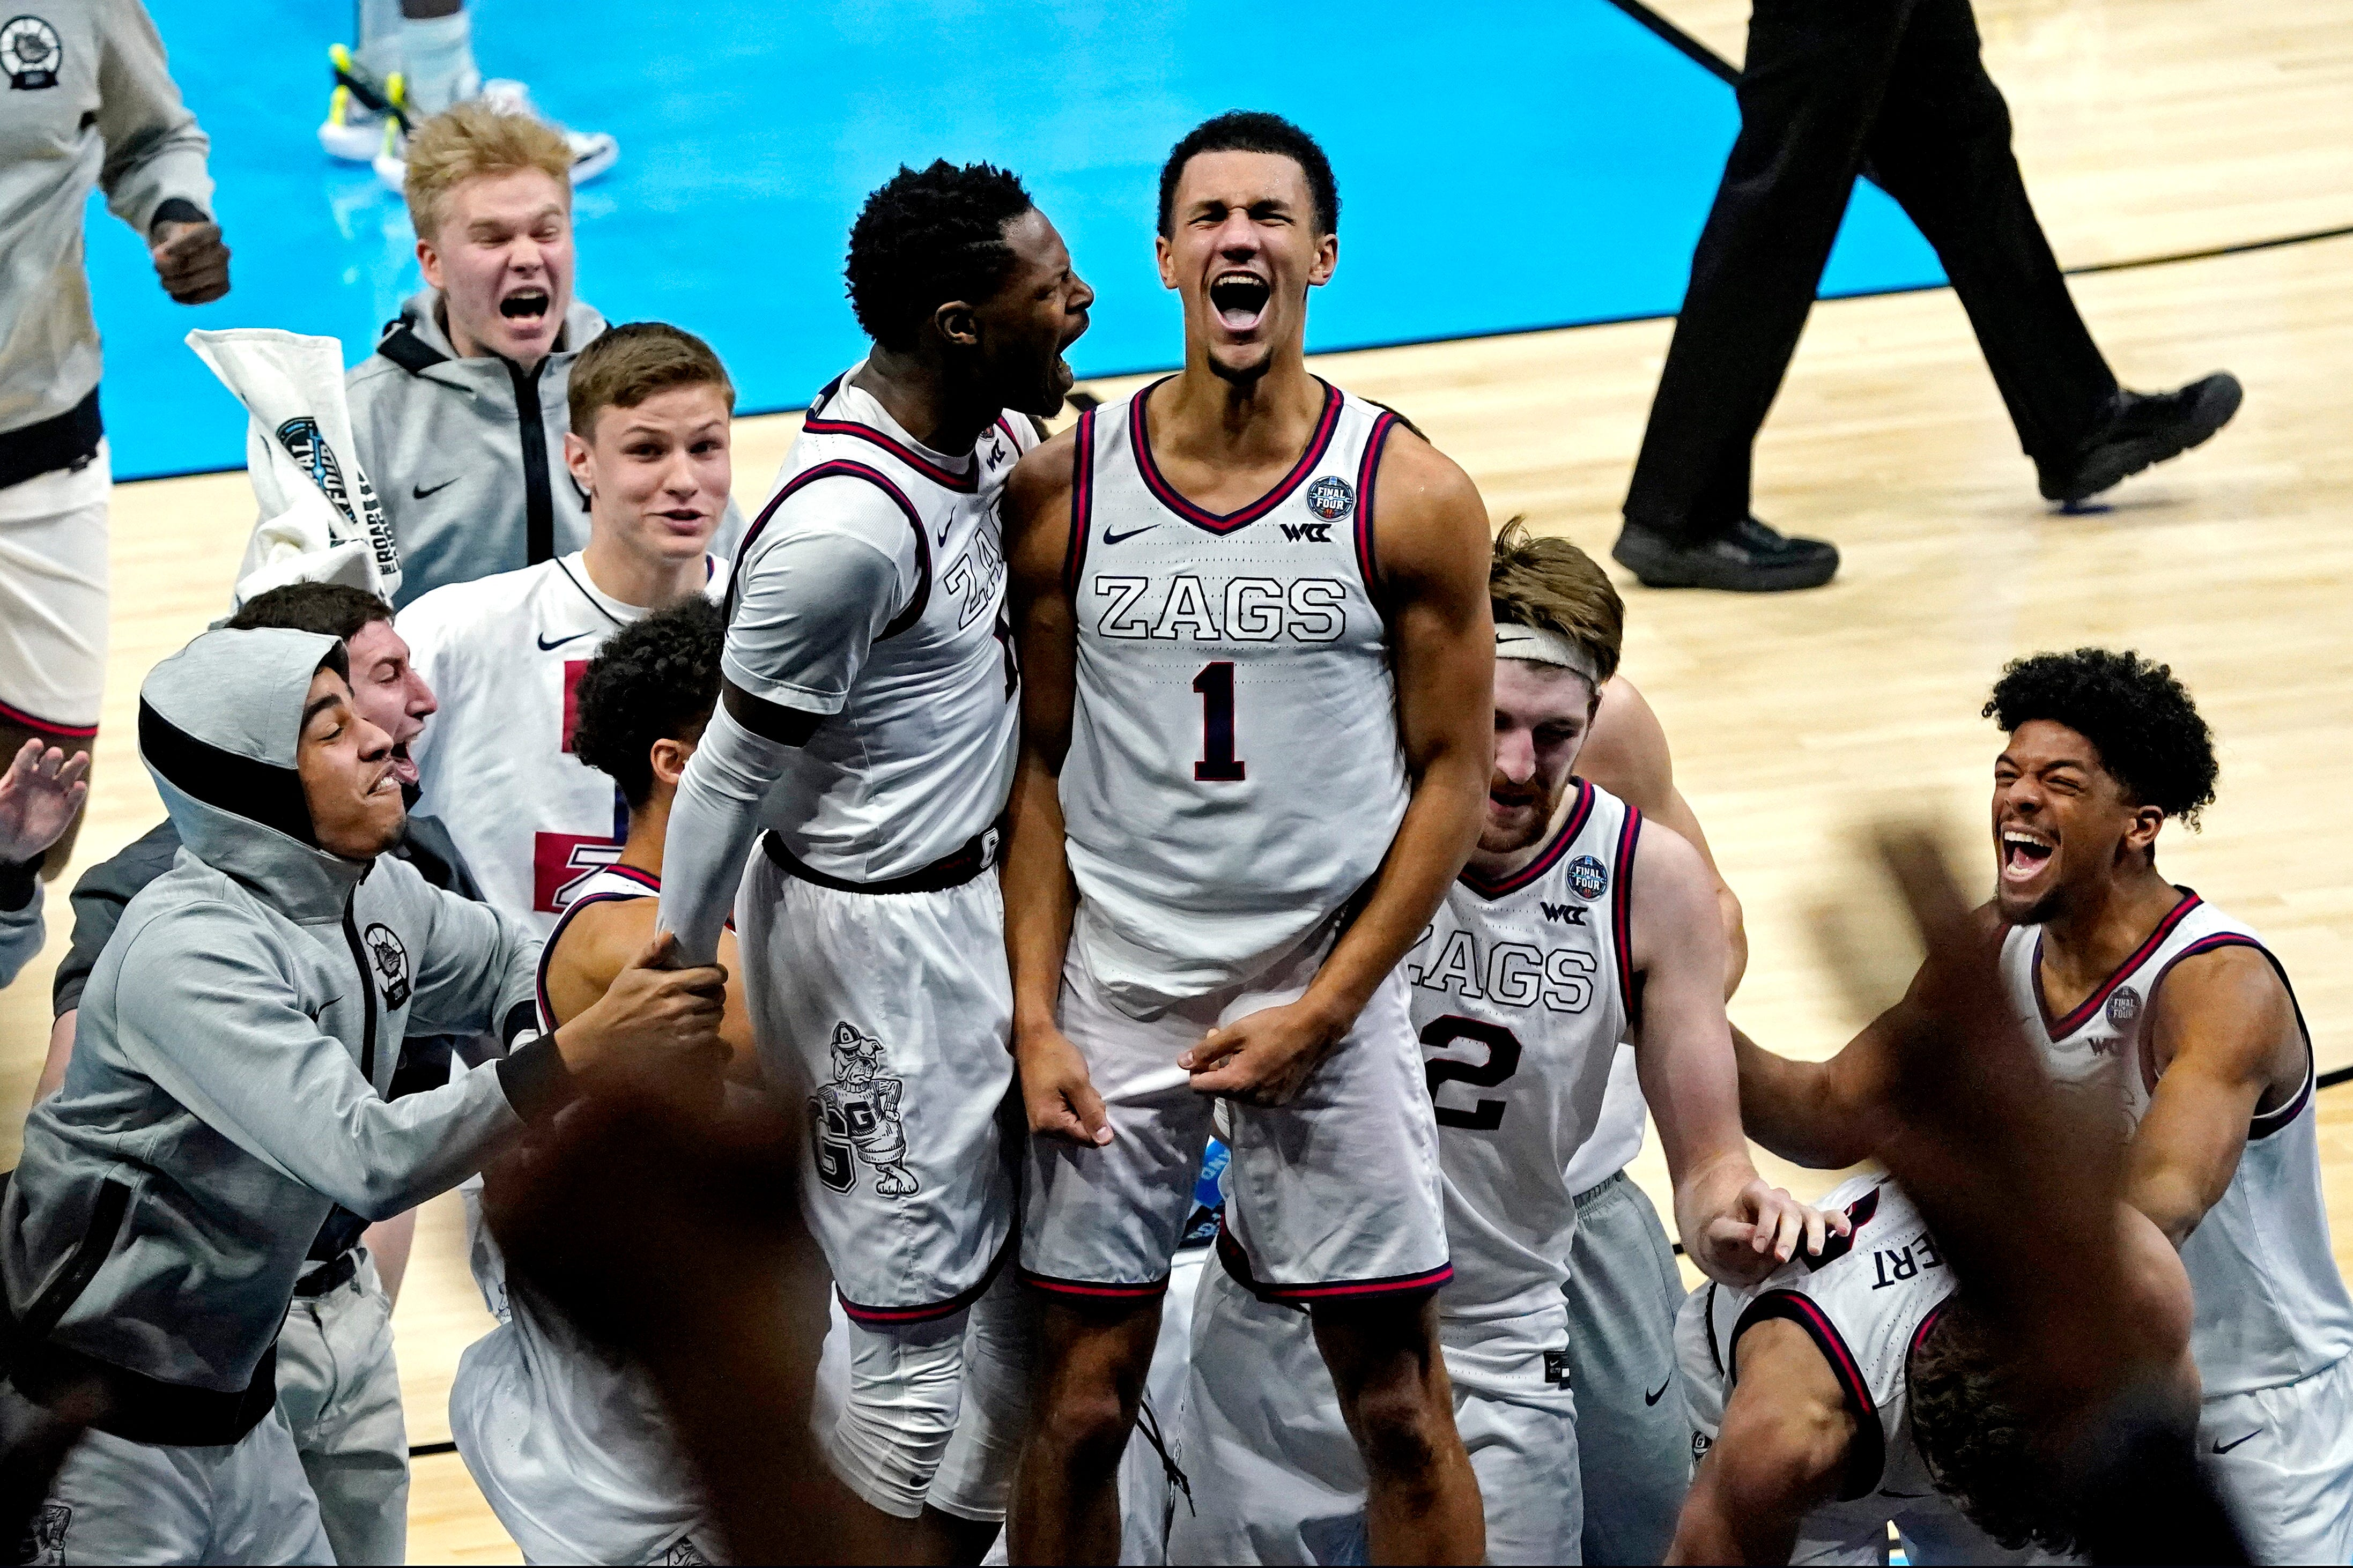 Final Four: Gonzaga survives UCLA's upset bid in overtime thriller to stay perfect, reach men's national title game